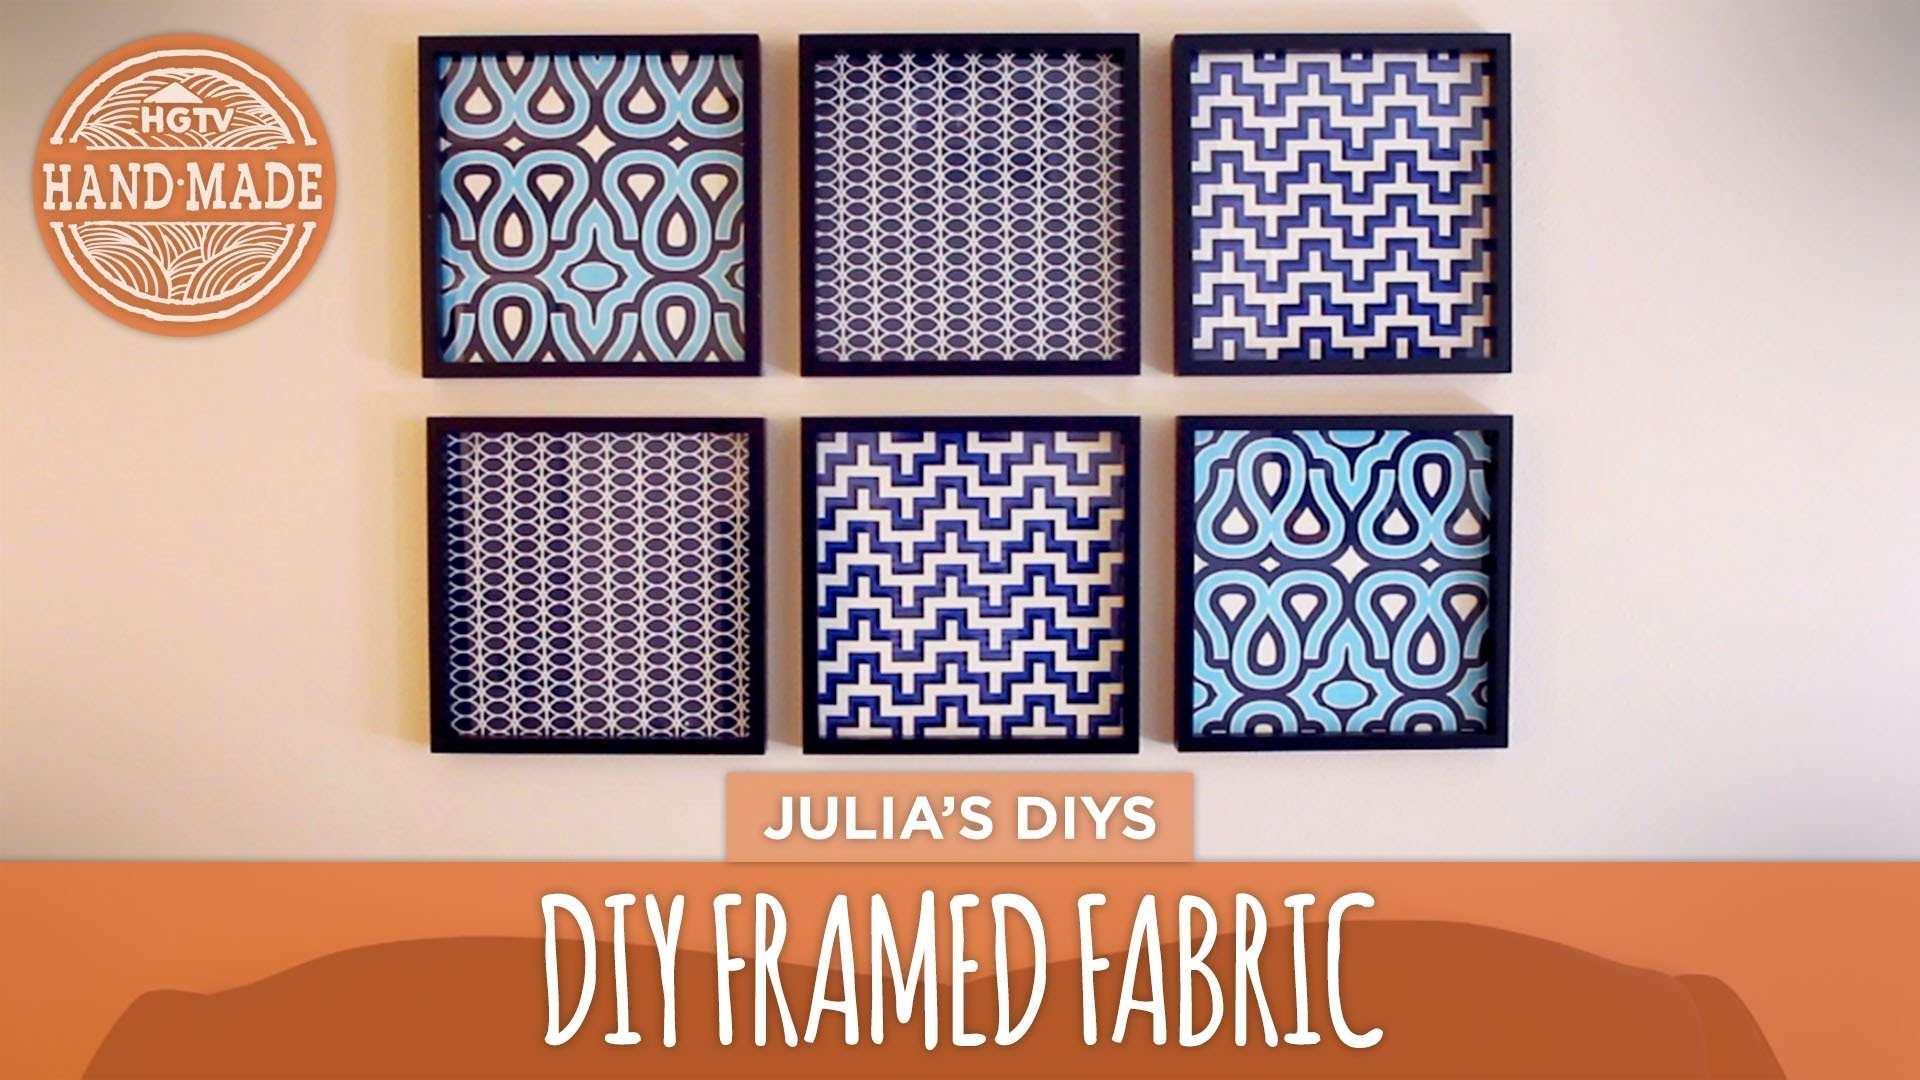 Diy Framed Fabric Gallery Wall - Hgtv Handmade - Youtube in Most Recent Homemade Wall Art With Fabric